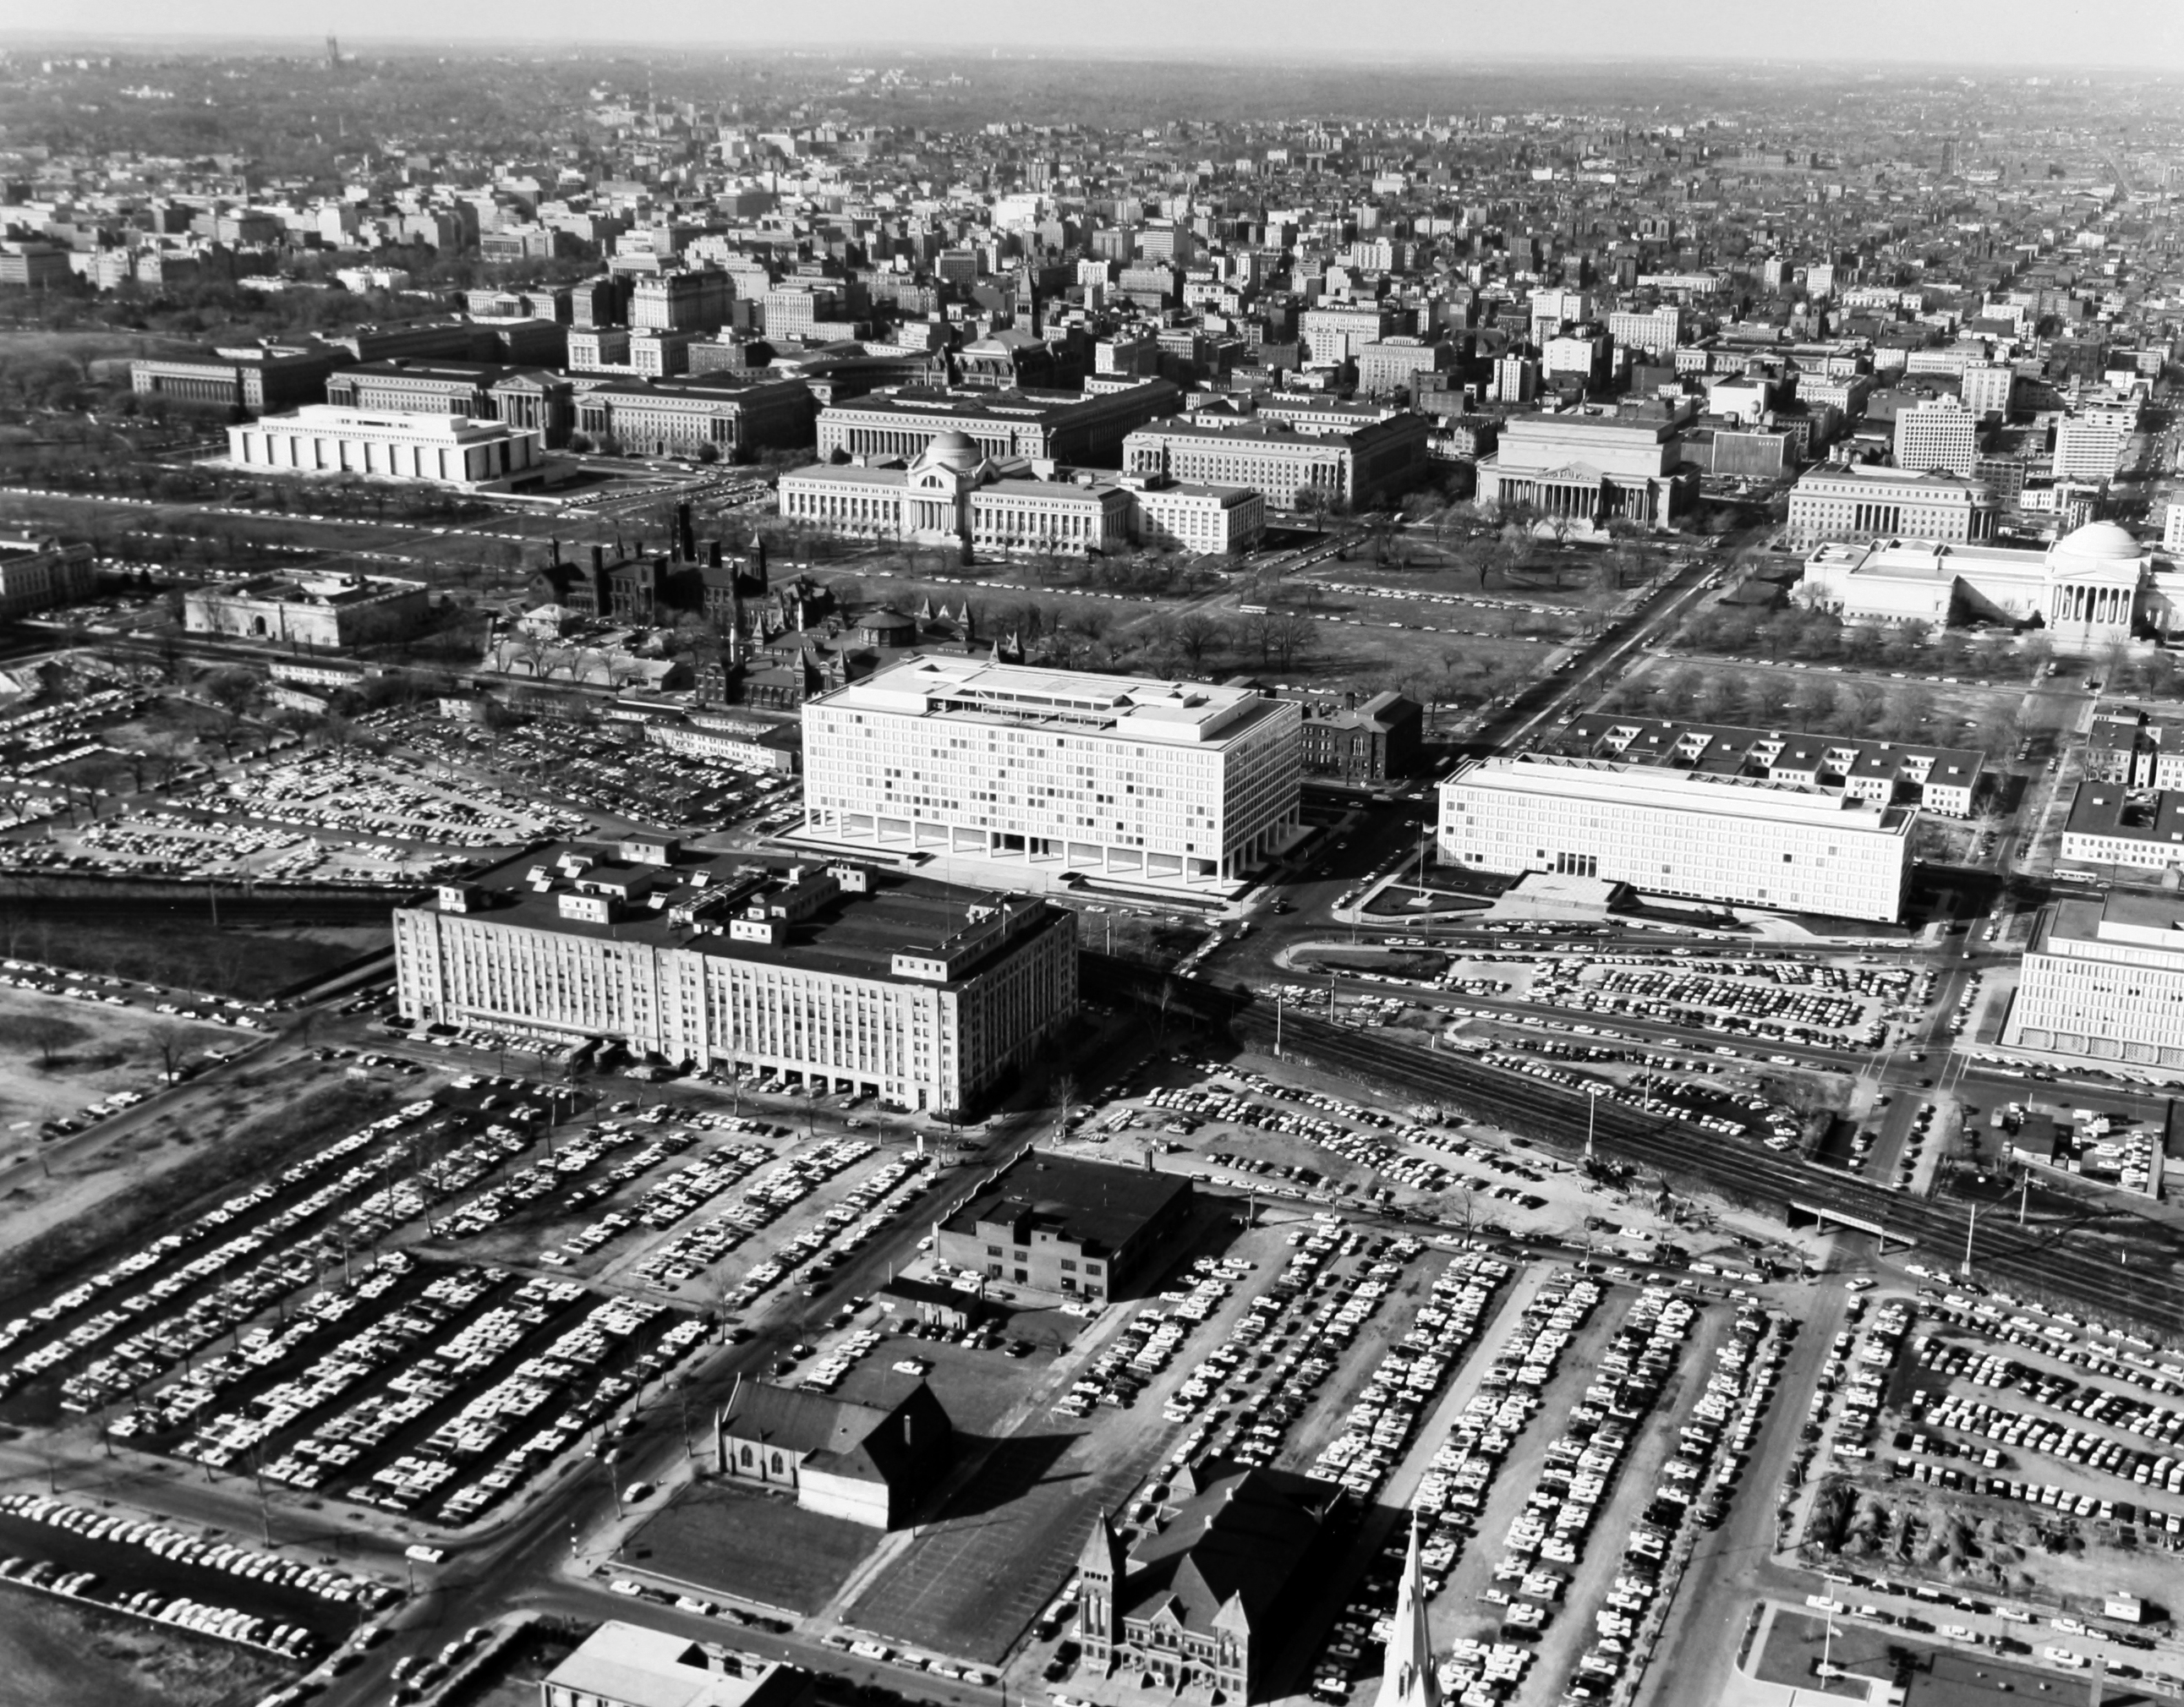 Aerial view of Southwest, Washington DC, including Federal Office Buildings 10A and 10B (seen just south of the National Mall), c. 1964.